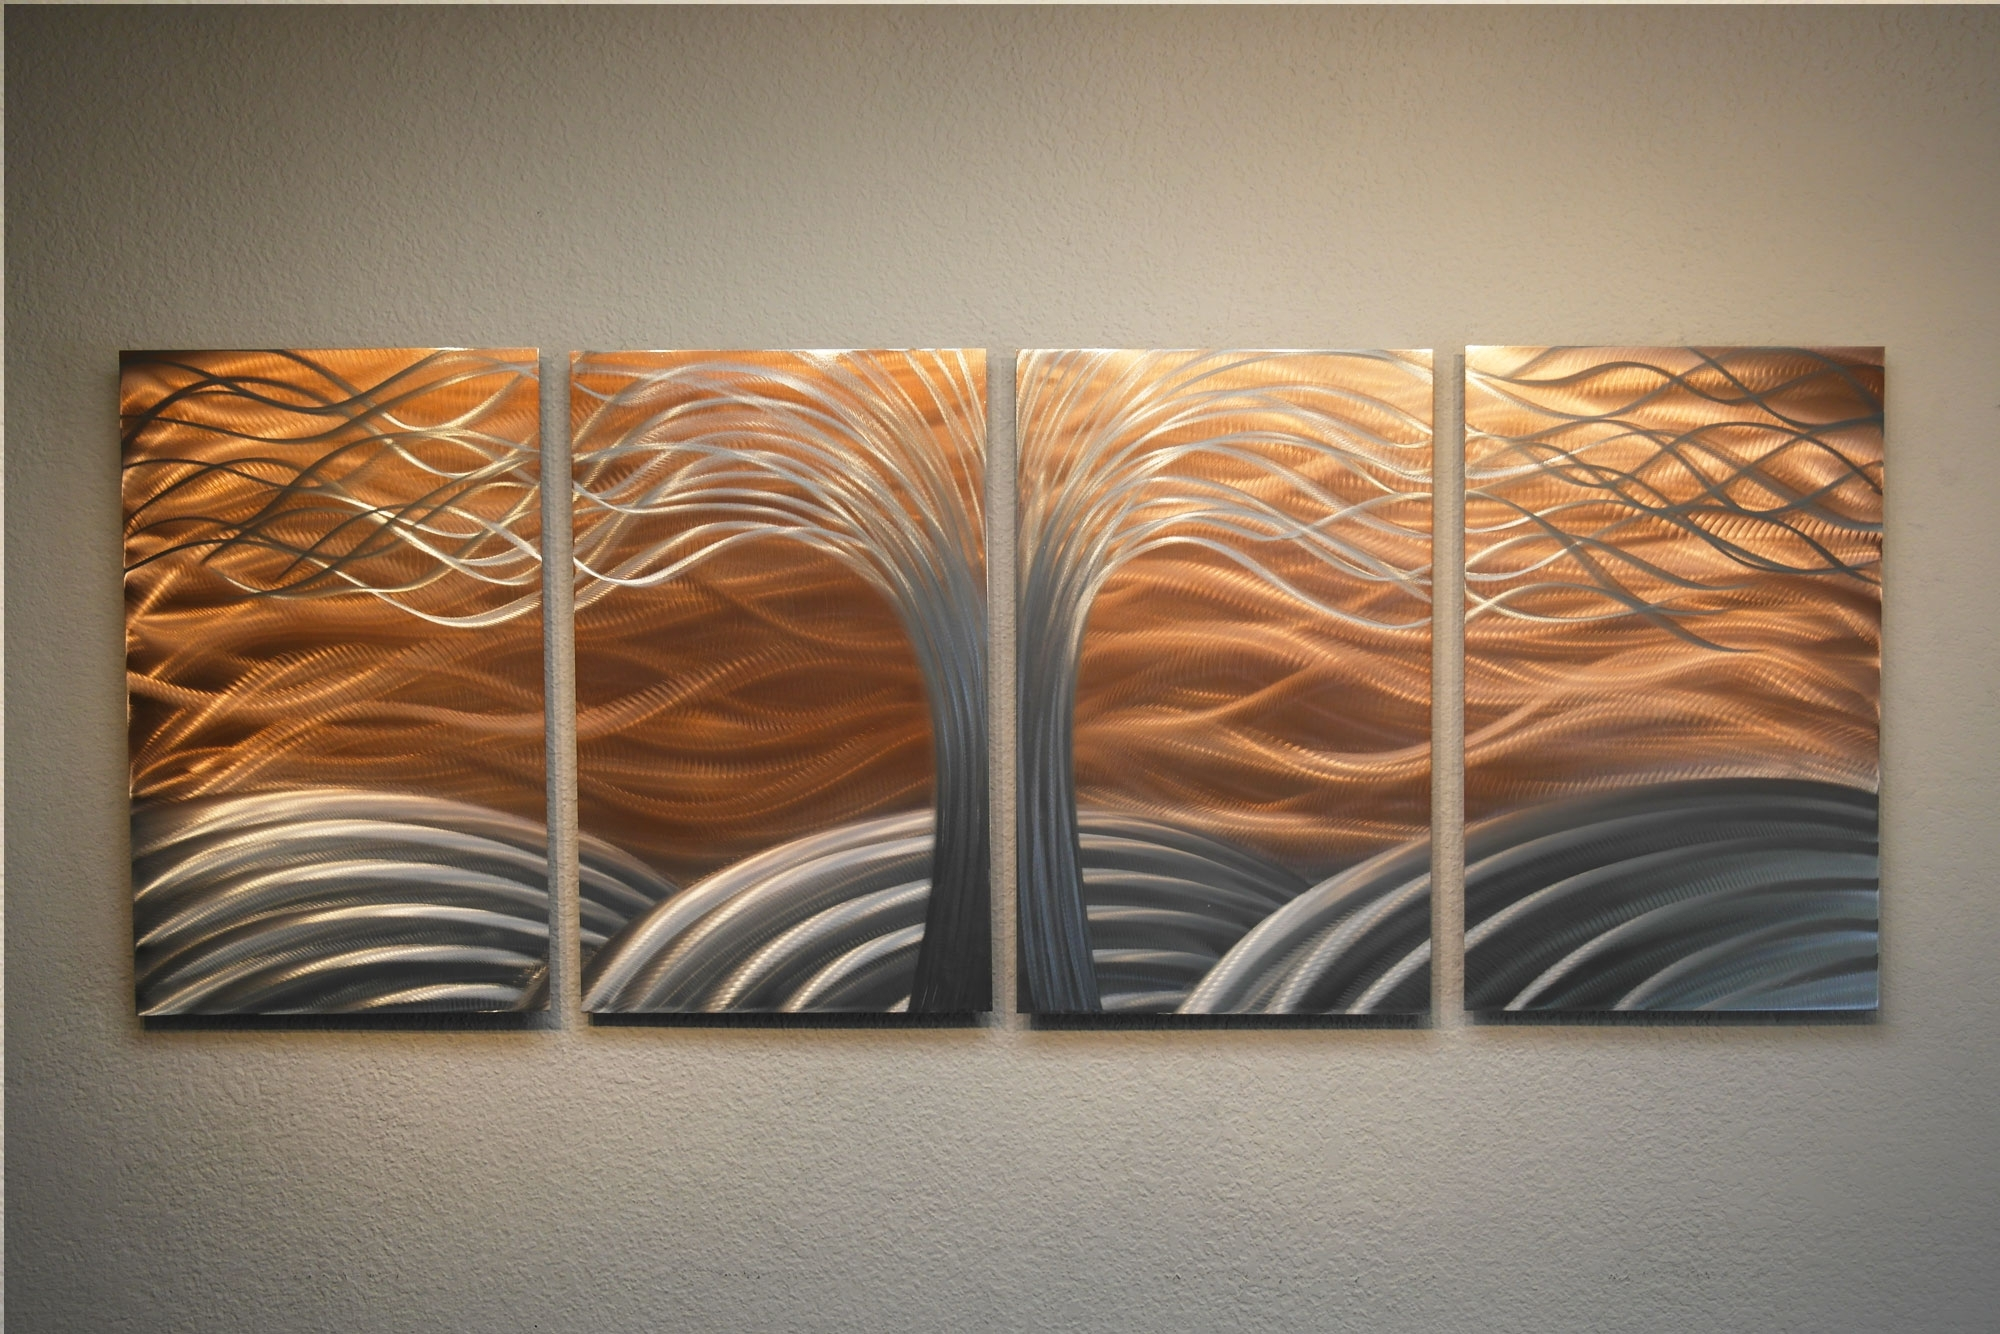 Copper Wall Decor Simple Wall Art Decor - Rfequilibrium Copper intended for Copper Wall Art (Image 9 of 20)